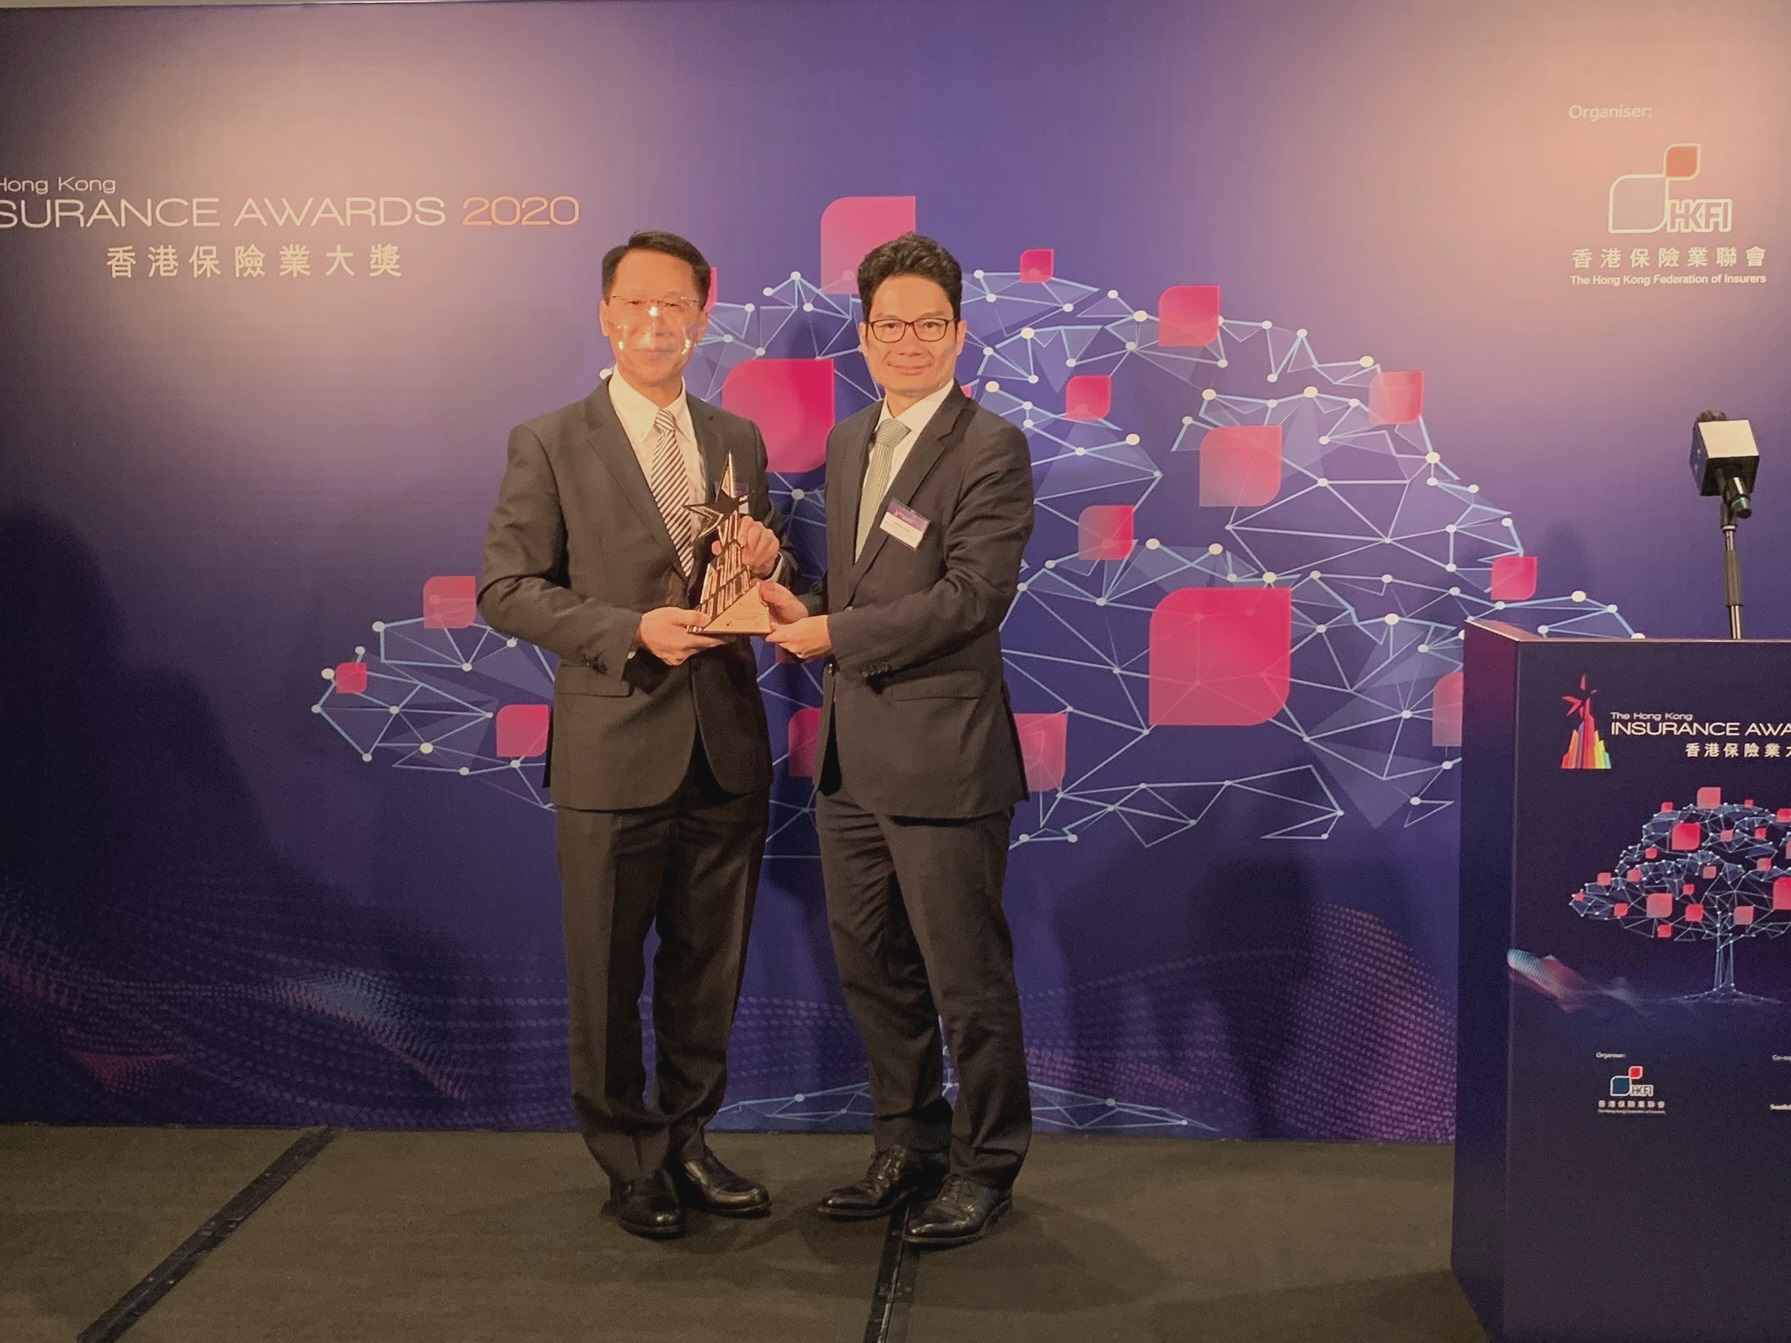 Blue Cross Wins Outstanding Claims Management Award  at the Hong Kong Insurance Awards 2020